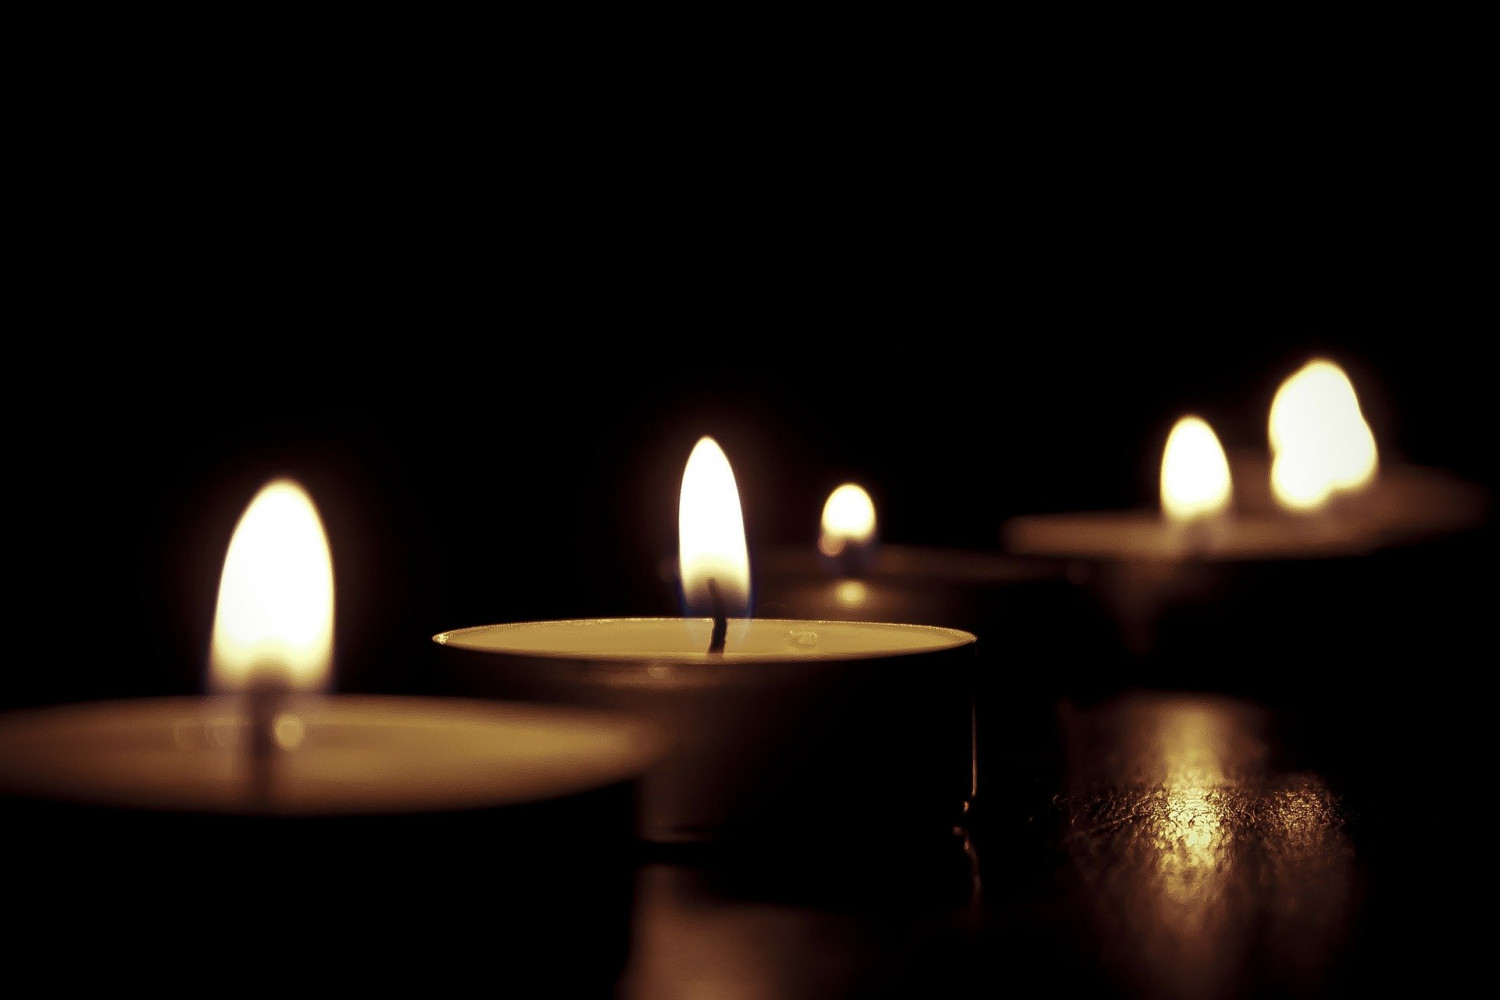 image of tealight candles